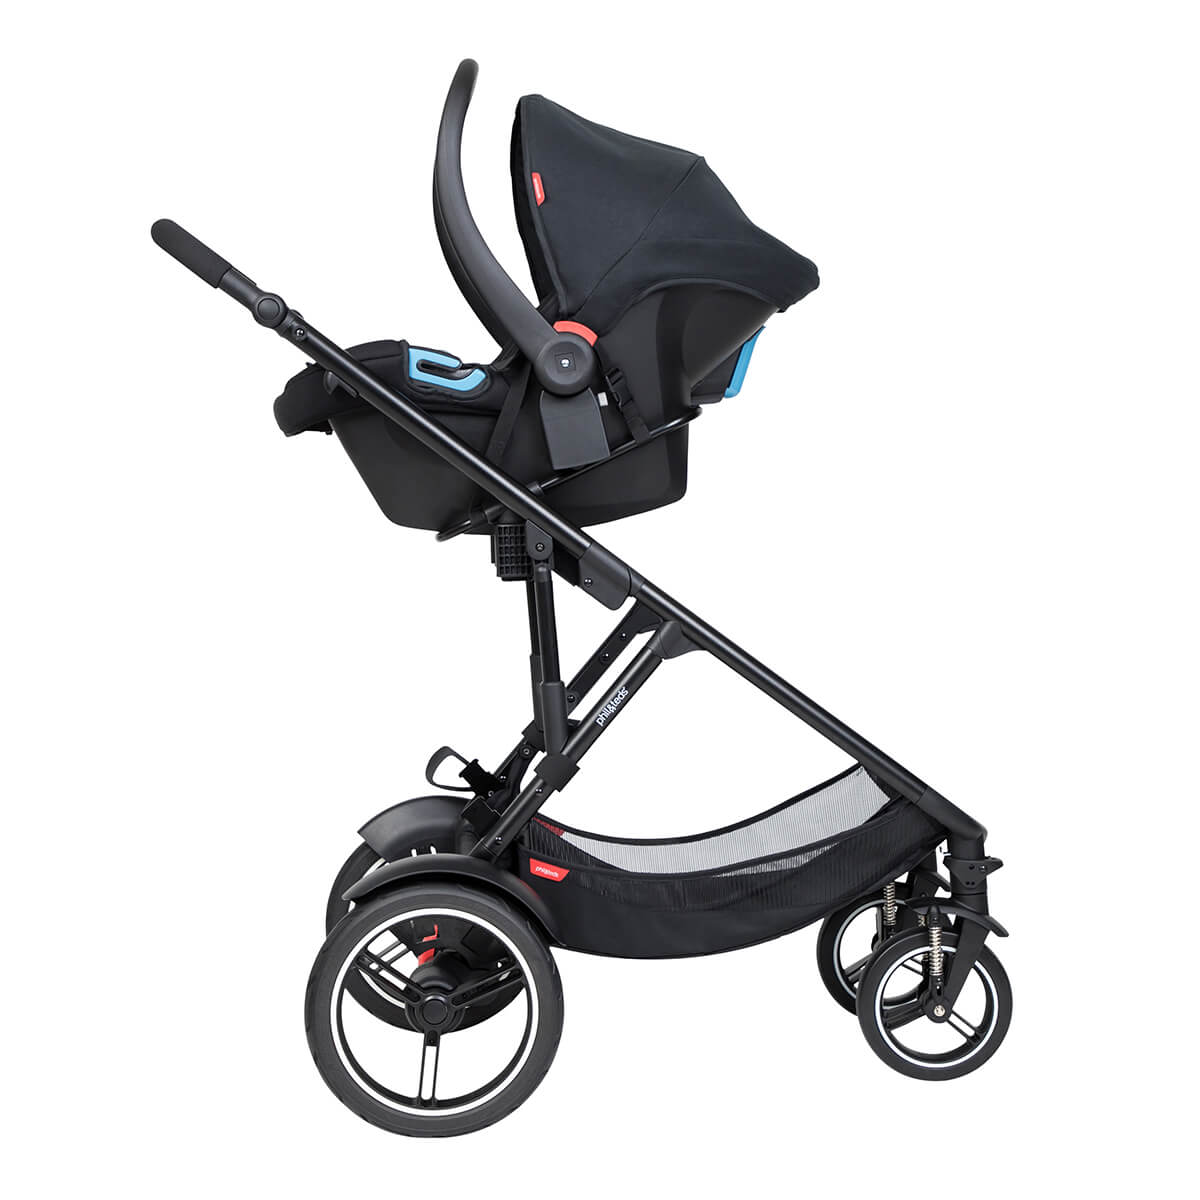 https://cdn.accentuate.io/4509917544525/19466203660482/philteds-voyager-buggy-with-travel-system-in-parent-facing-mode-v1626485610717.jpg?1200x1200